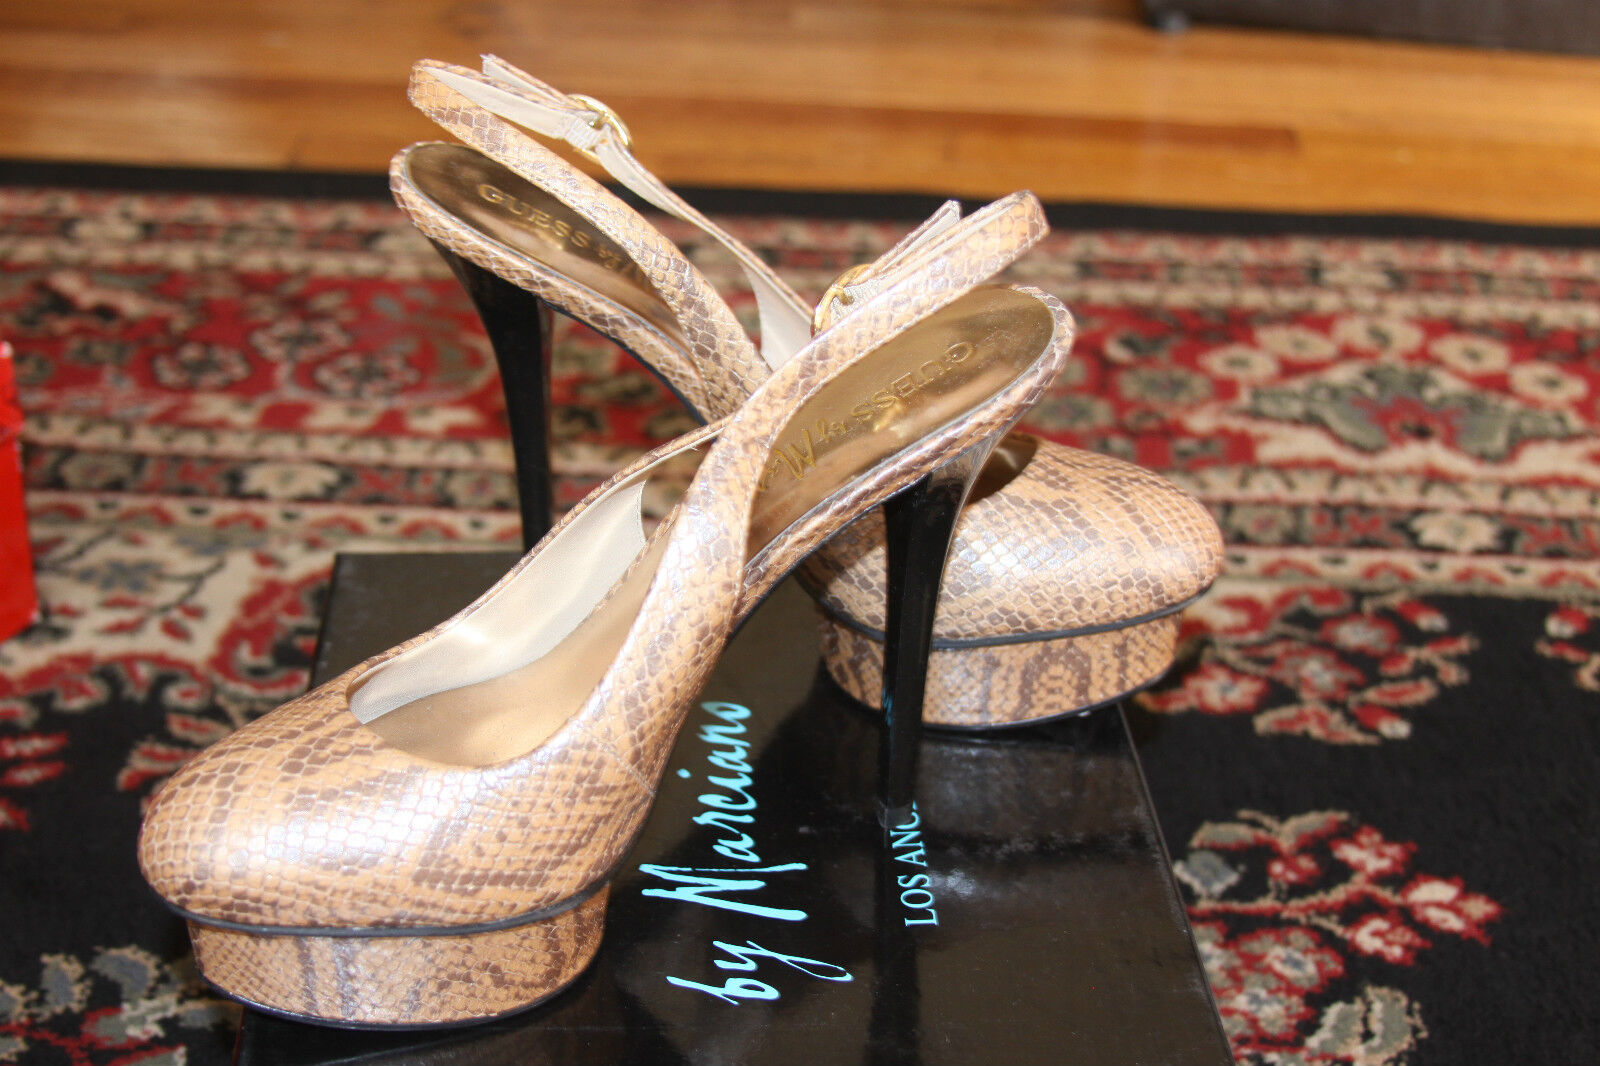 GUESS BY MARCIANO CHATA PLATFORM PUMP SIZE 8.5